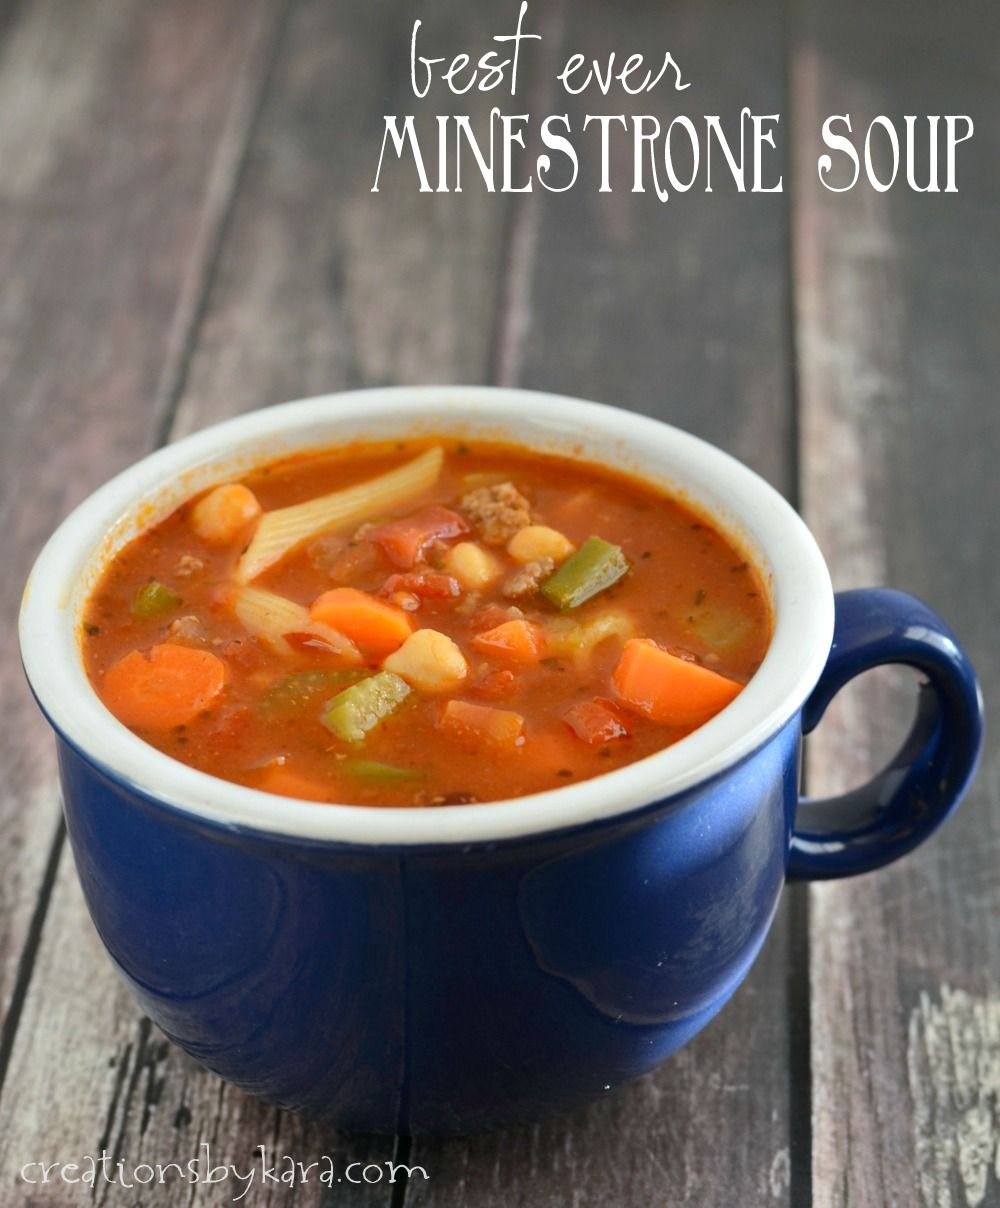 This Recipe For Minestrone Soup Is The Best I Ve Ever Tasted It Even Beats All Soups Tried At Italian Restaurants So Good